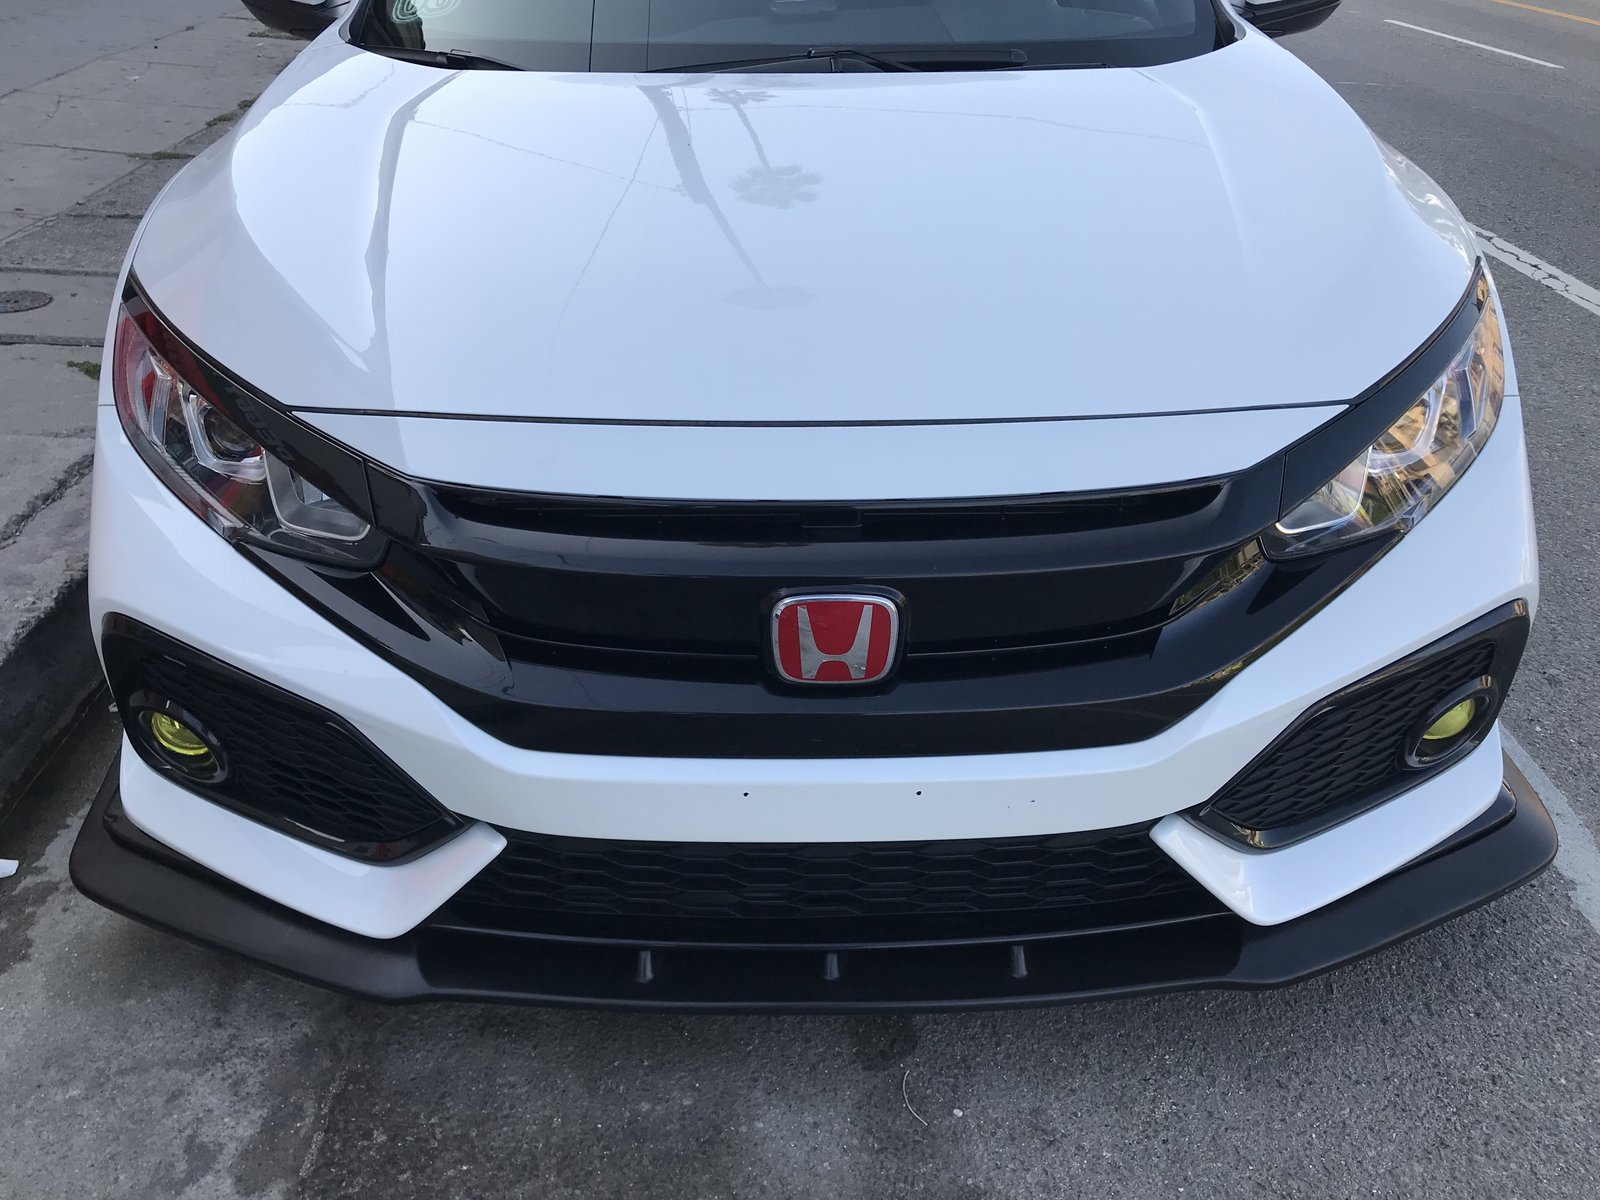 New Ikon Front Lip For 17 18 Civic Hatchback And Si Page 6 2016 Honda Civic Forum 10th Gen Type R Forum Si Forum Civicx Com